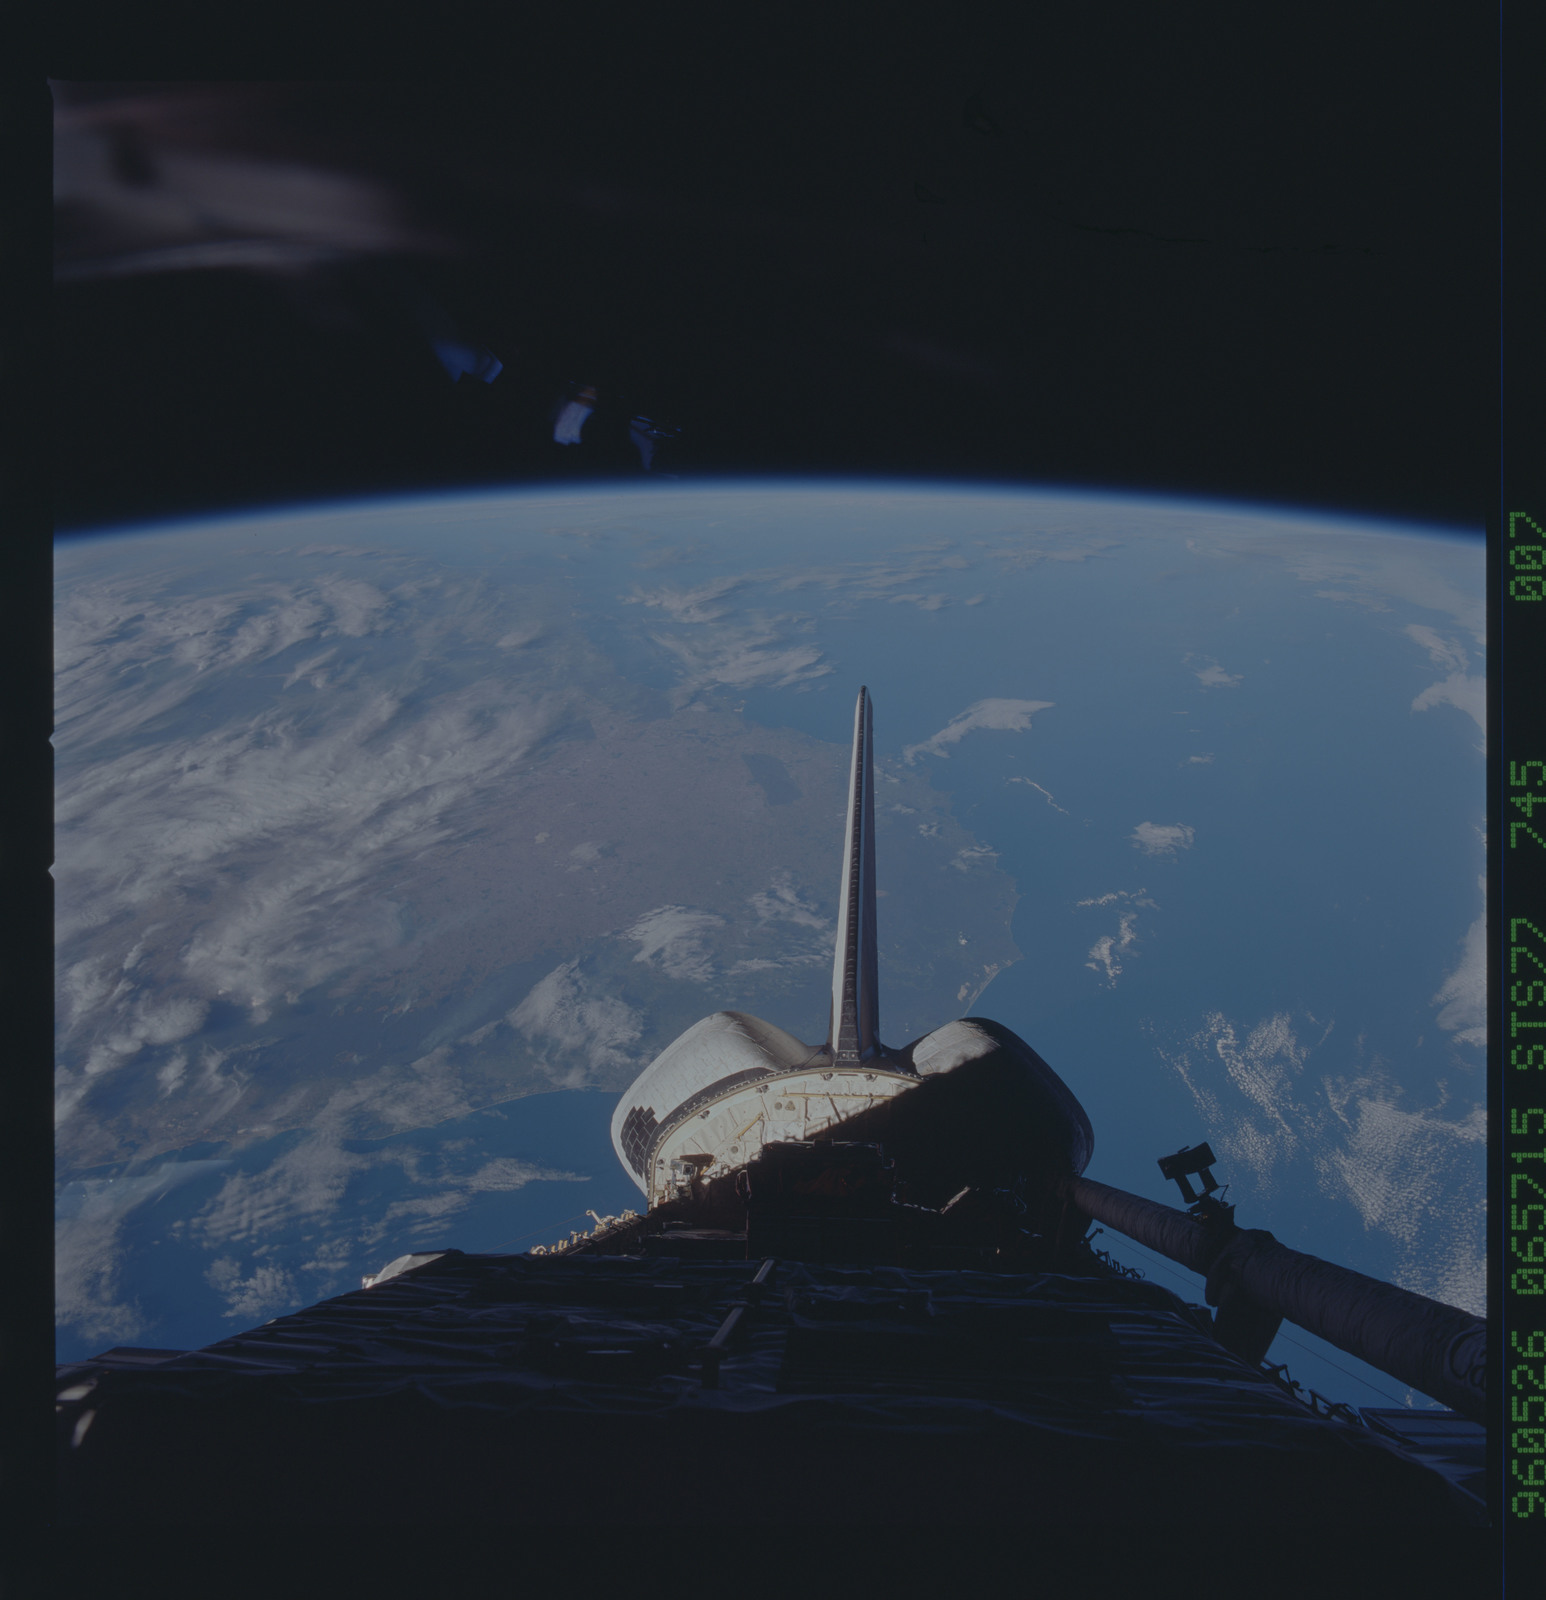 STS077-745-007 - STS-077 - View of the Endeavour's payload bay